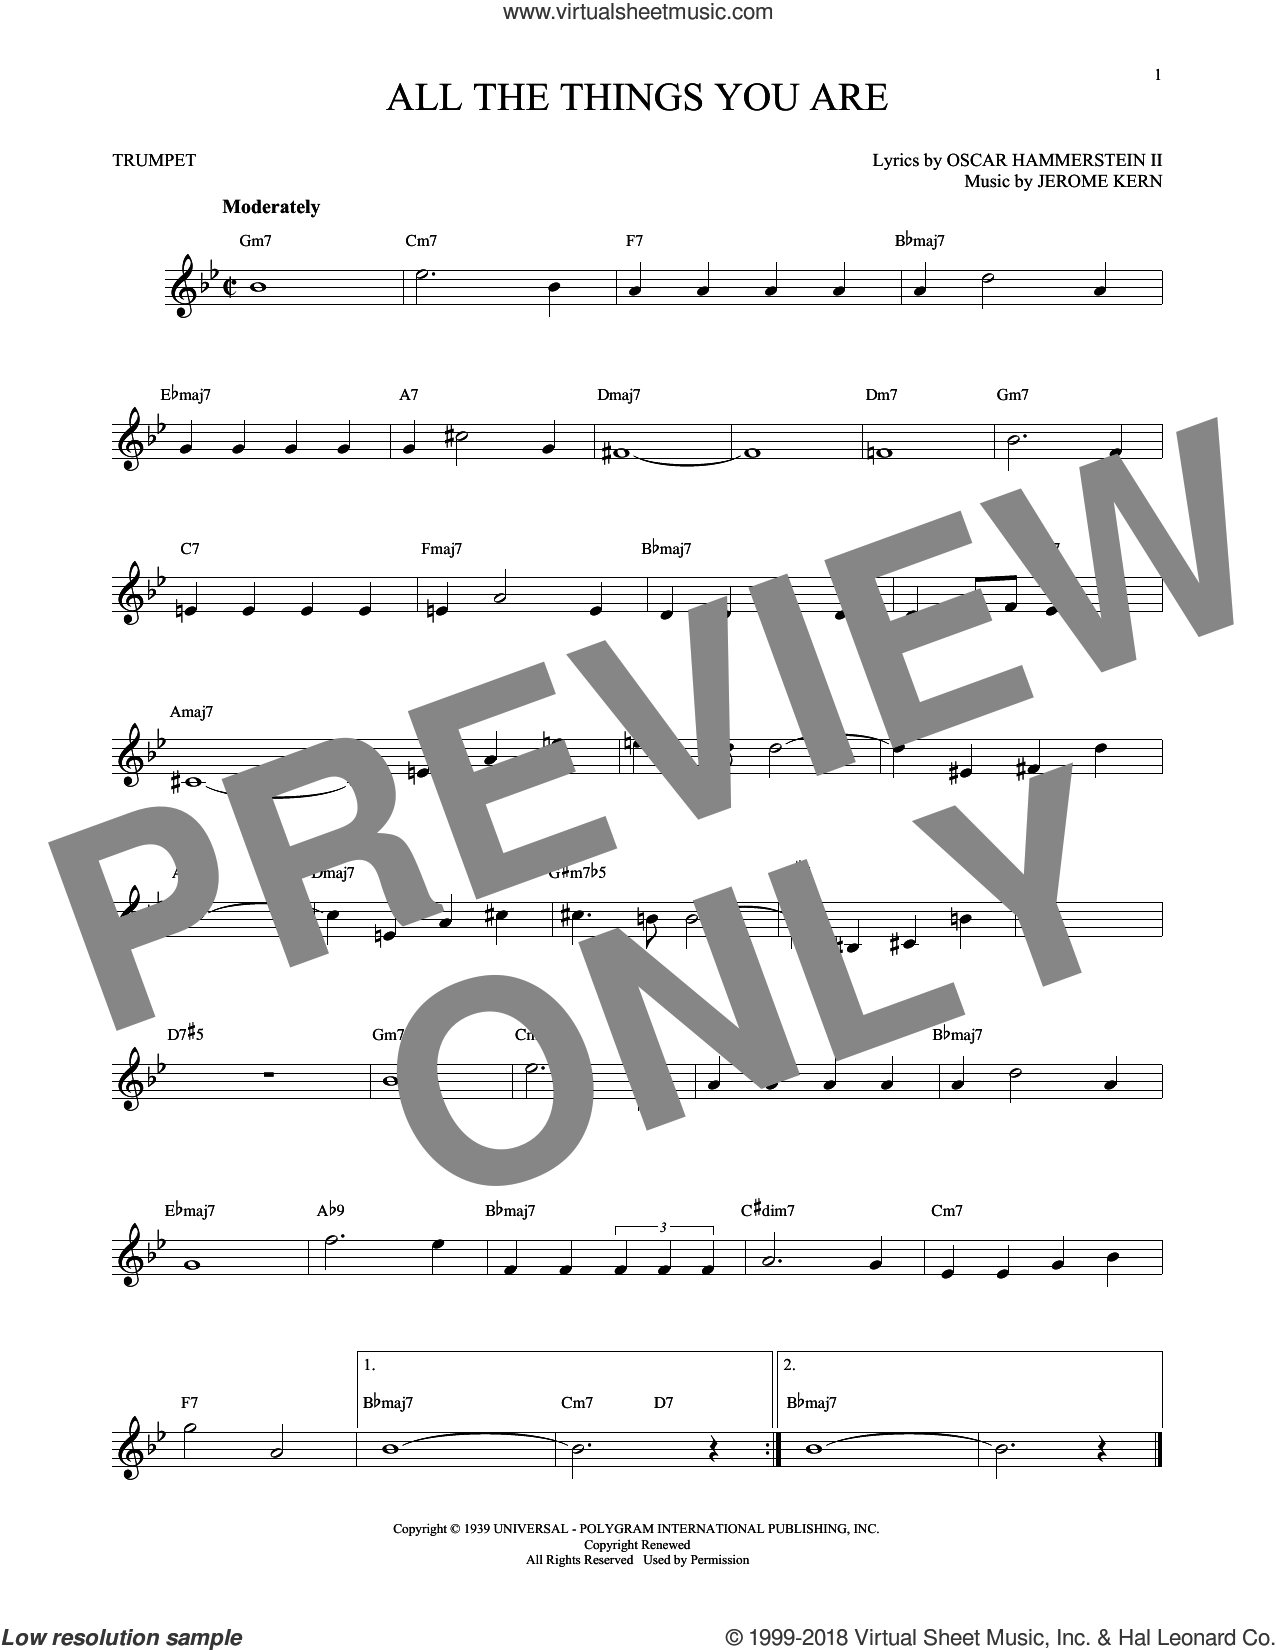 All The Things You Are sheet music for trumpet solo by Oscar II Hammerstein, Jack Leonard with Tommy Dorsey Orchestra and Jerome Kern, intermediate skill level